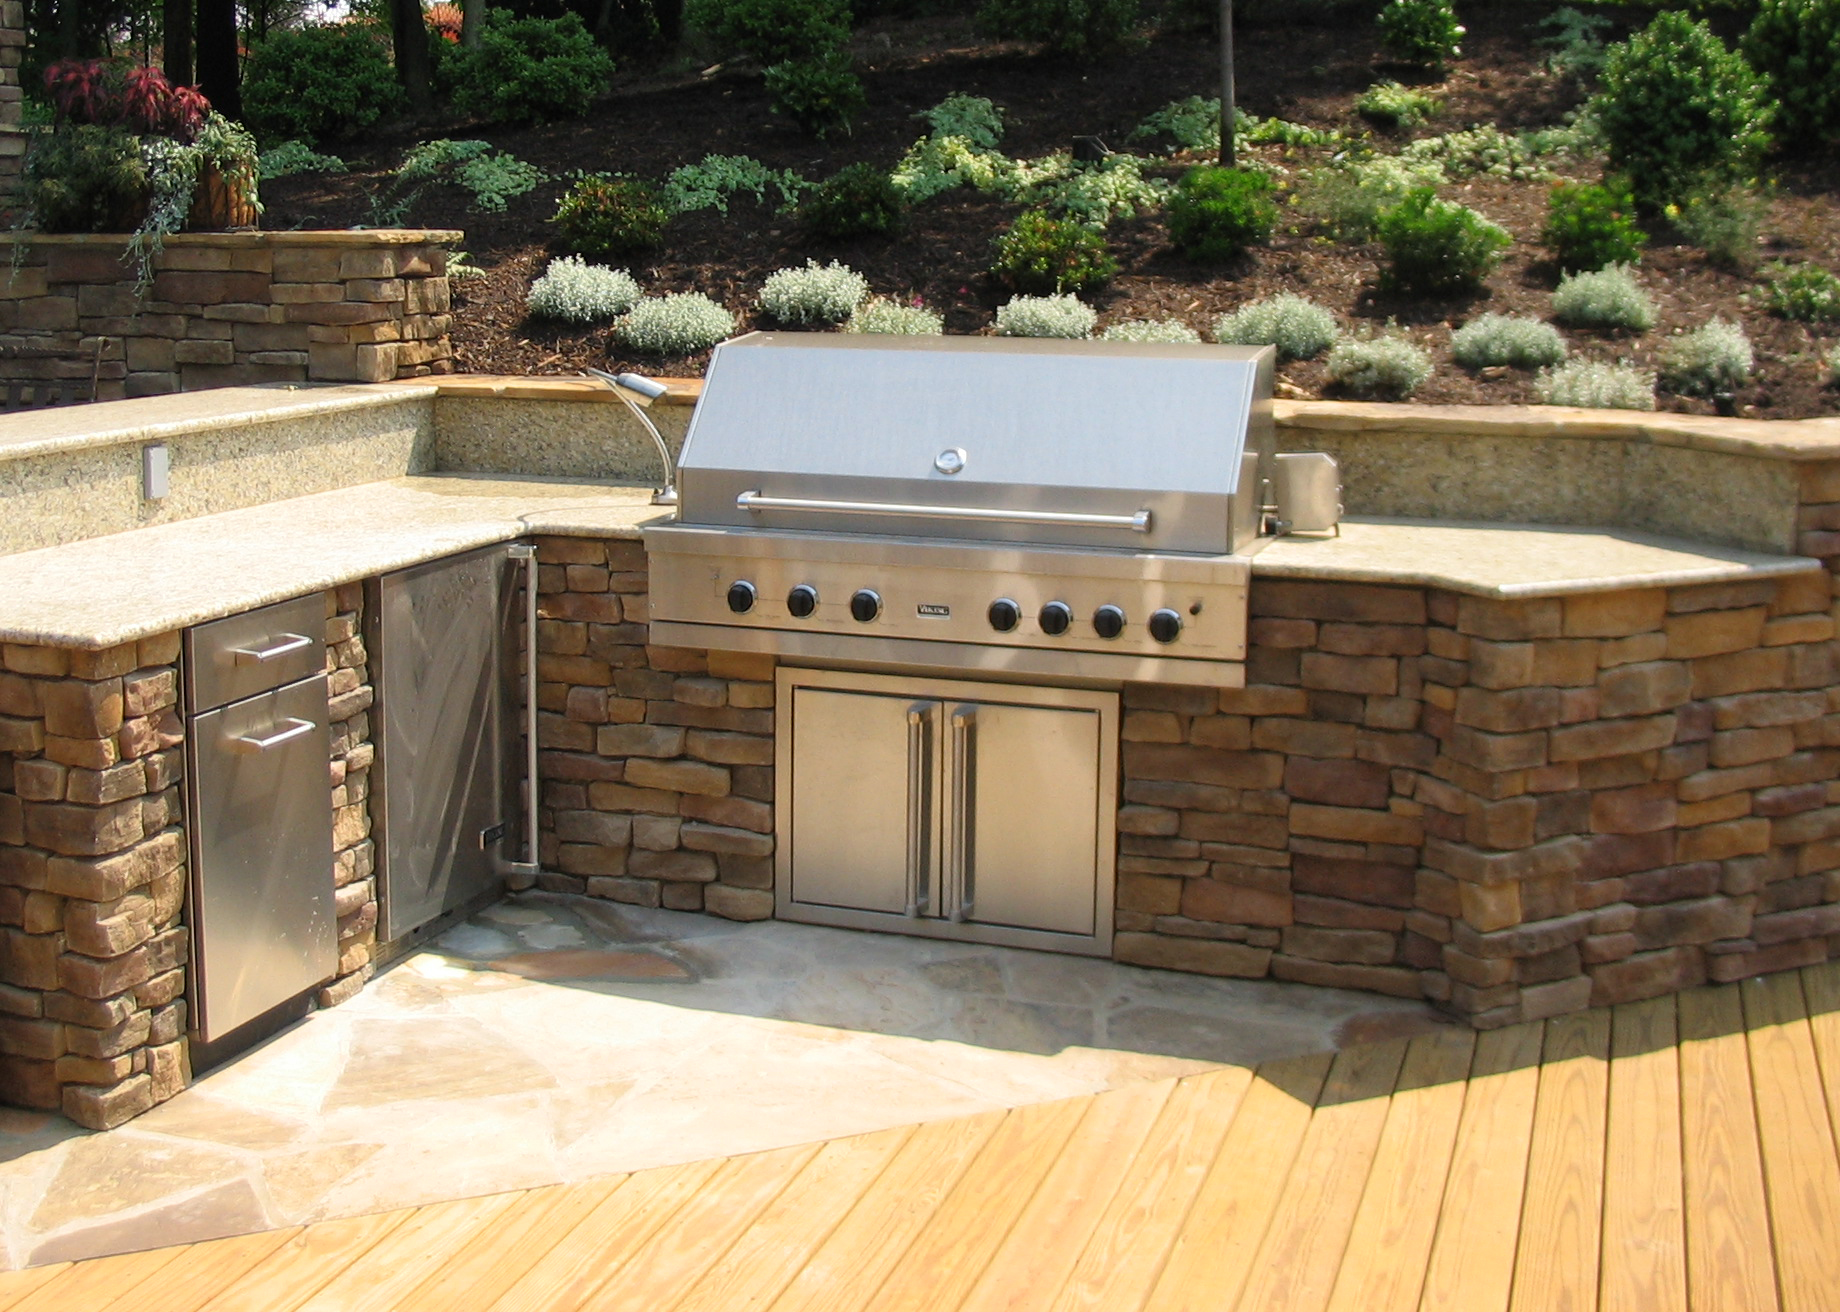 Designing an outdoor kitchen revolutionary gardens for Outdoor kitchen wall ideas